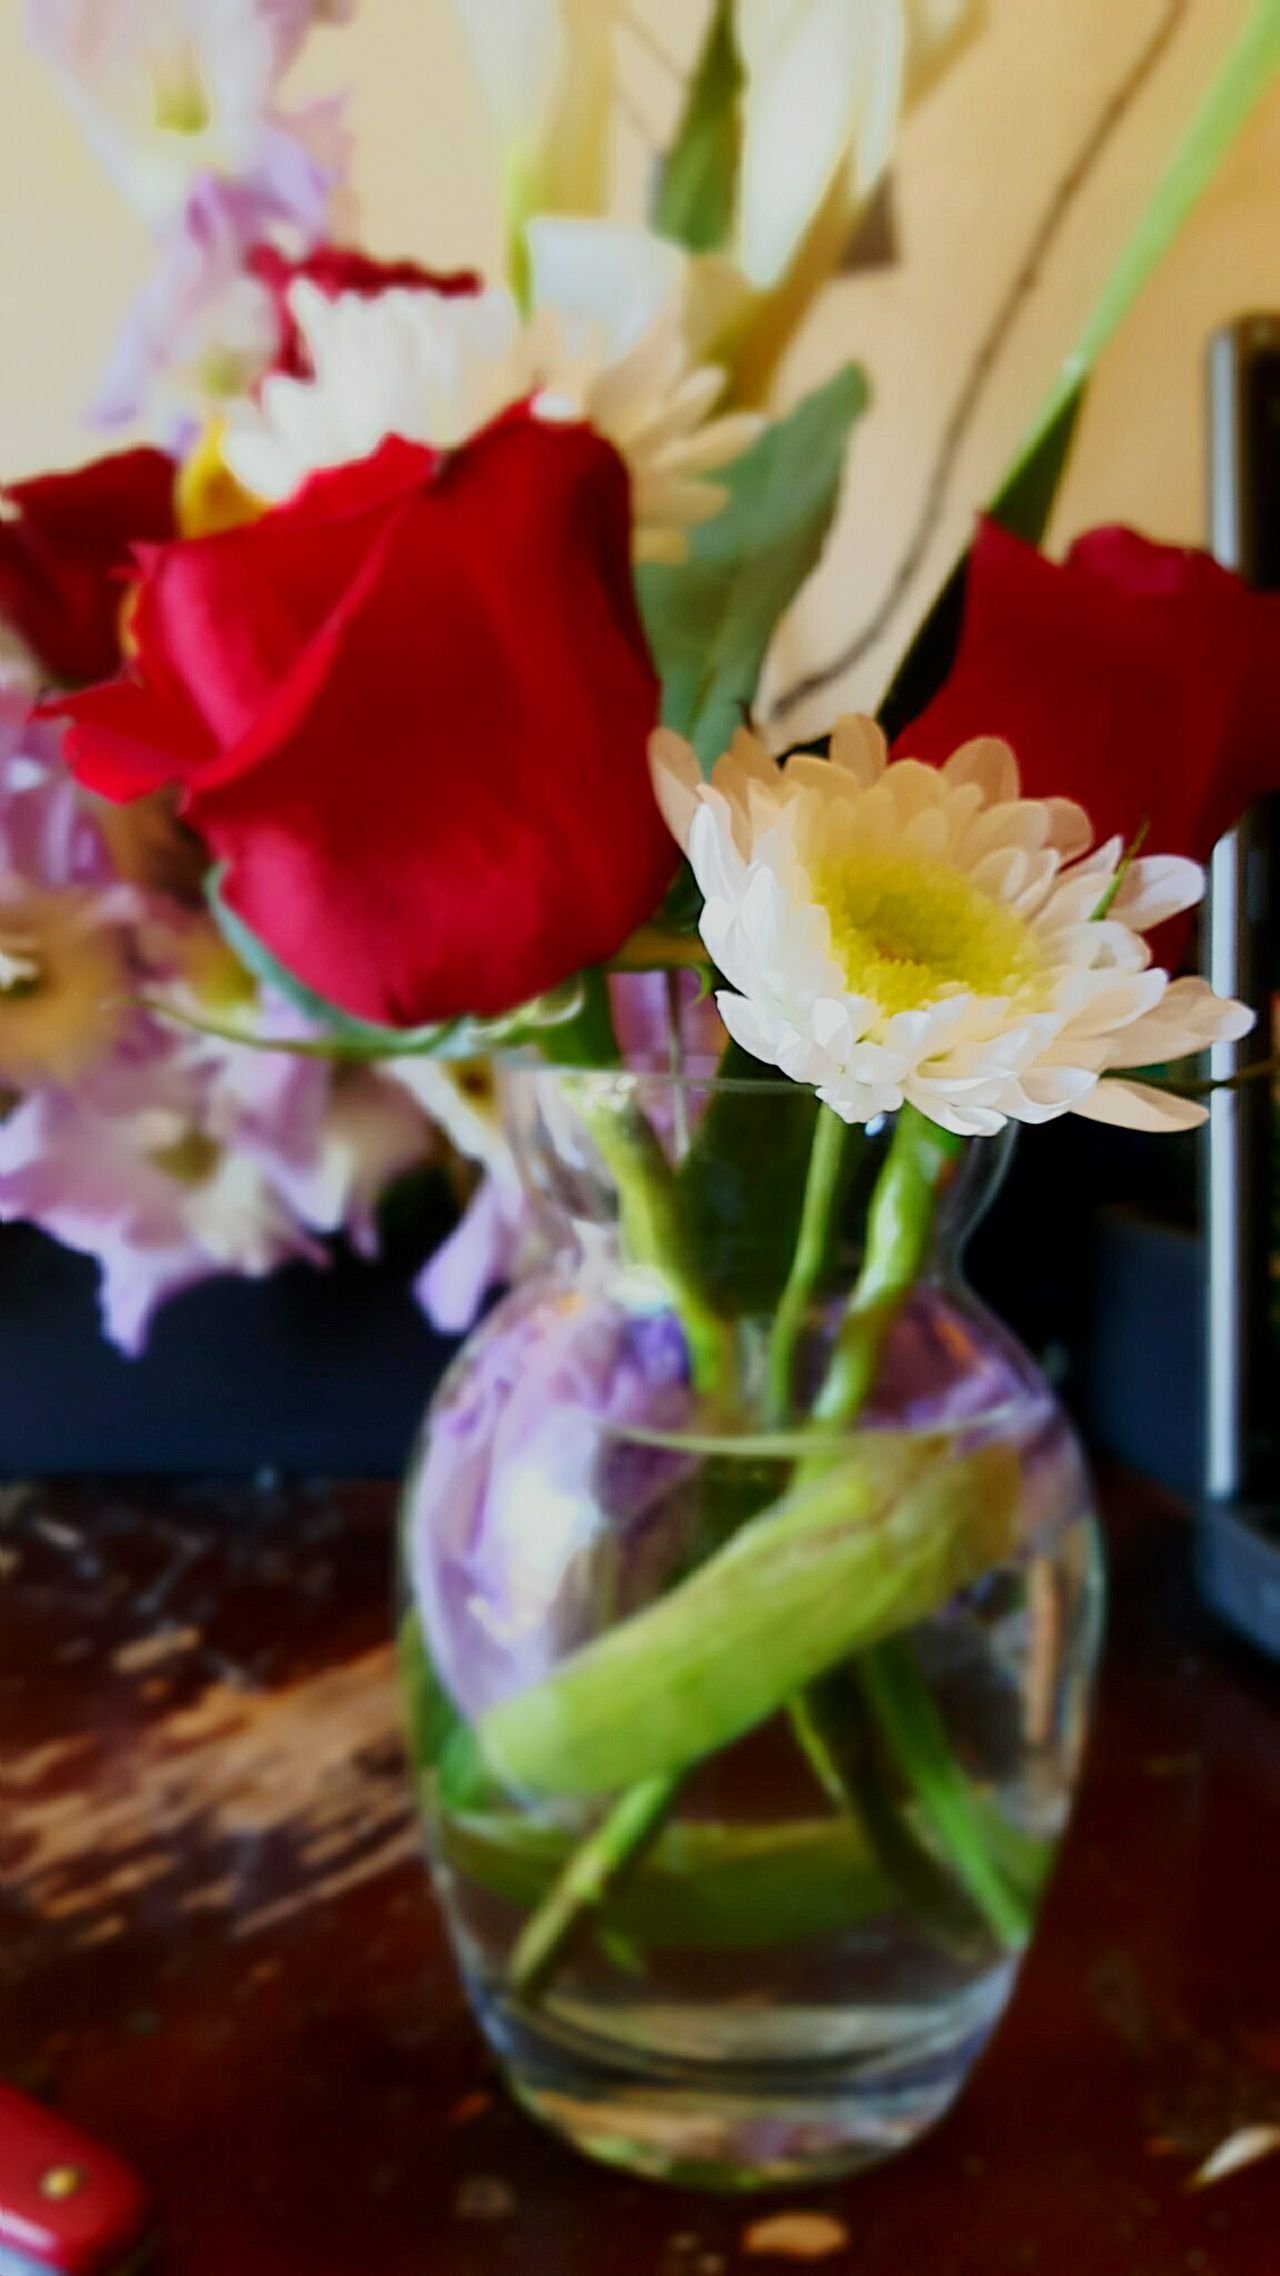 This Weeks Unwanted, Unloved And Rejected Flora Flower Arrangement Flowers,Plants & Garden